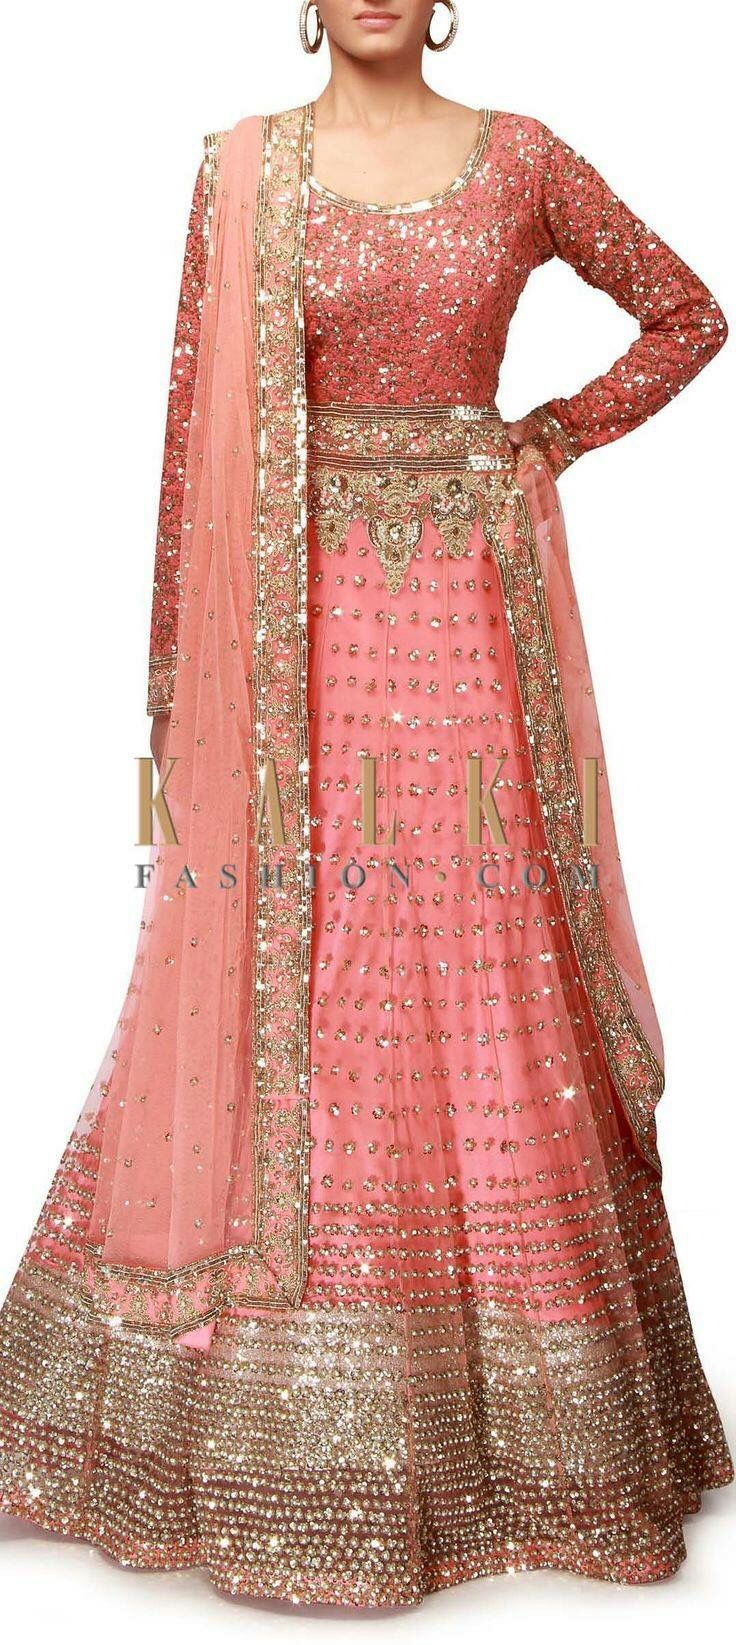 My choice for the patil twin's Indian dress in Harry Potter movie's Yule Ball